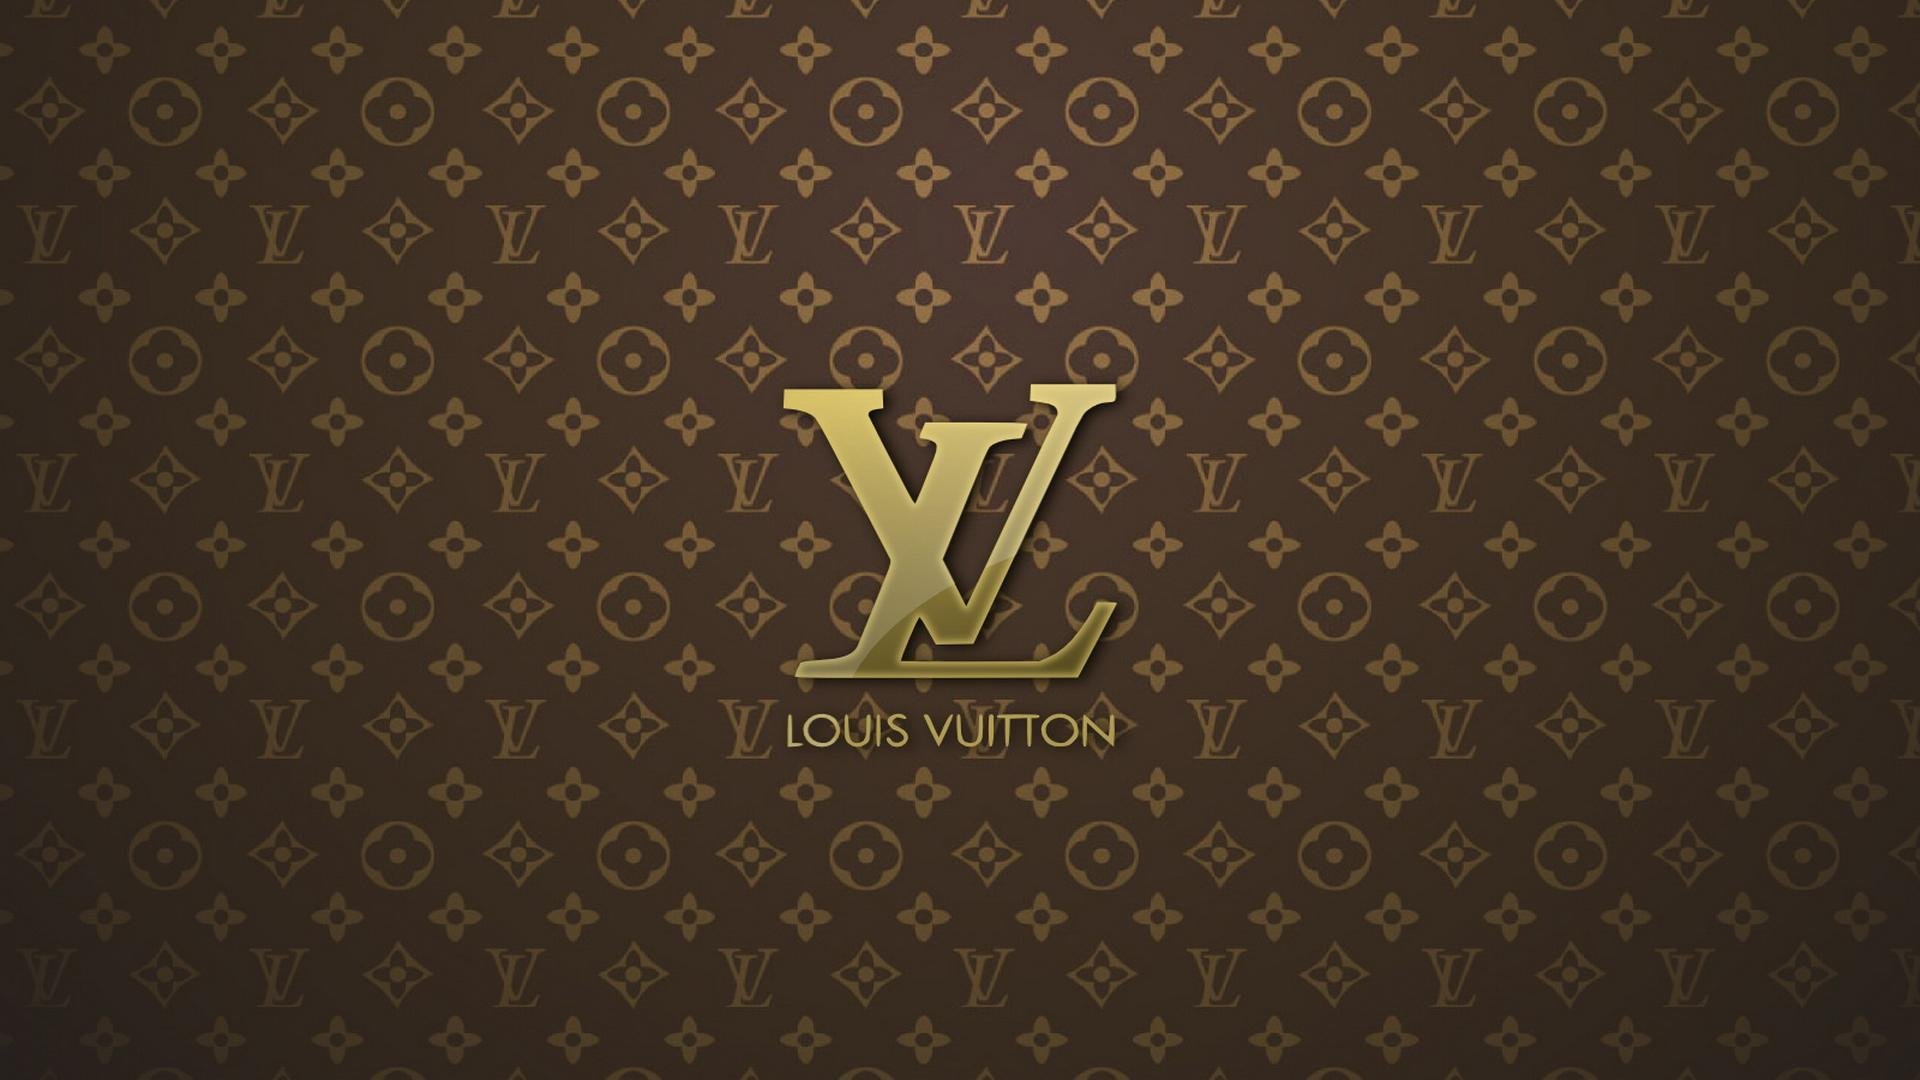 Inspirations from Louis Vuitton Nate Berkus Inspirations from Nate Berkus Inspirations from Louis Vuitton cover Nate Berkus Inspirations from Nate Berkus Inspirations from Louis Vuitton cover